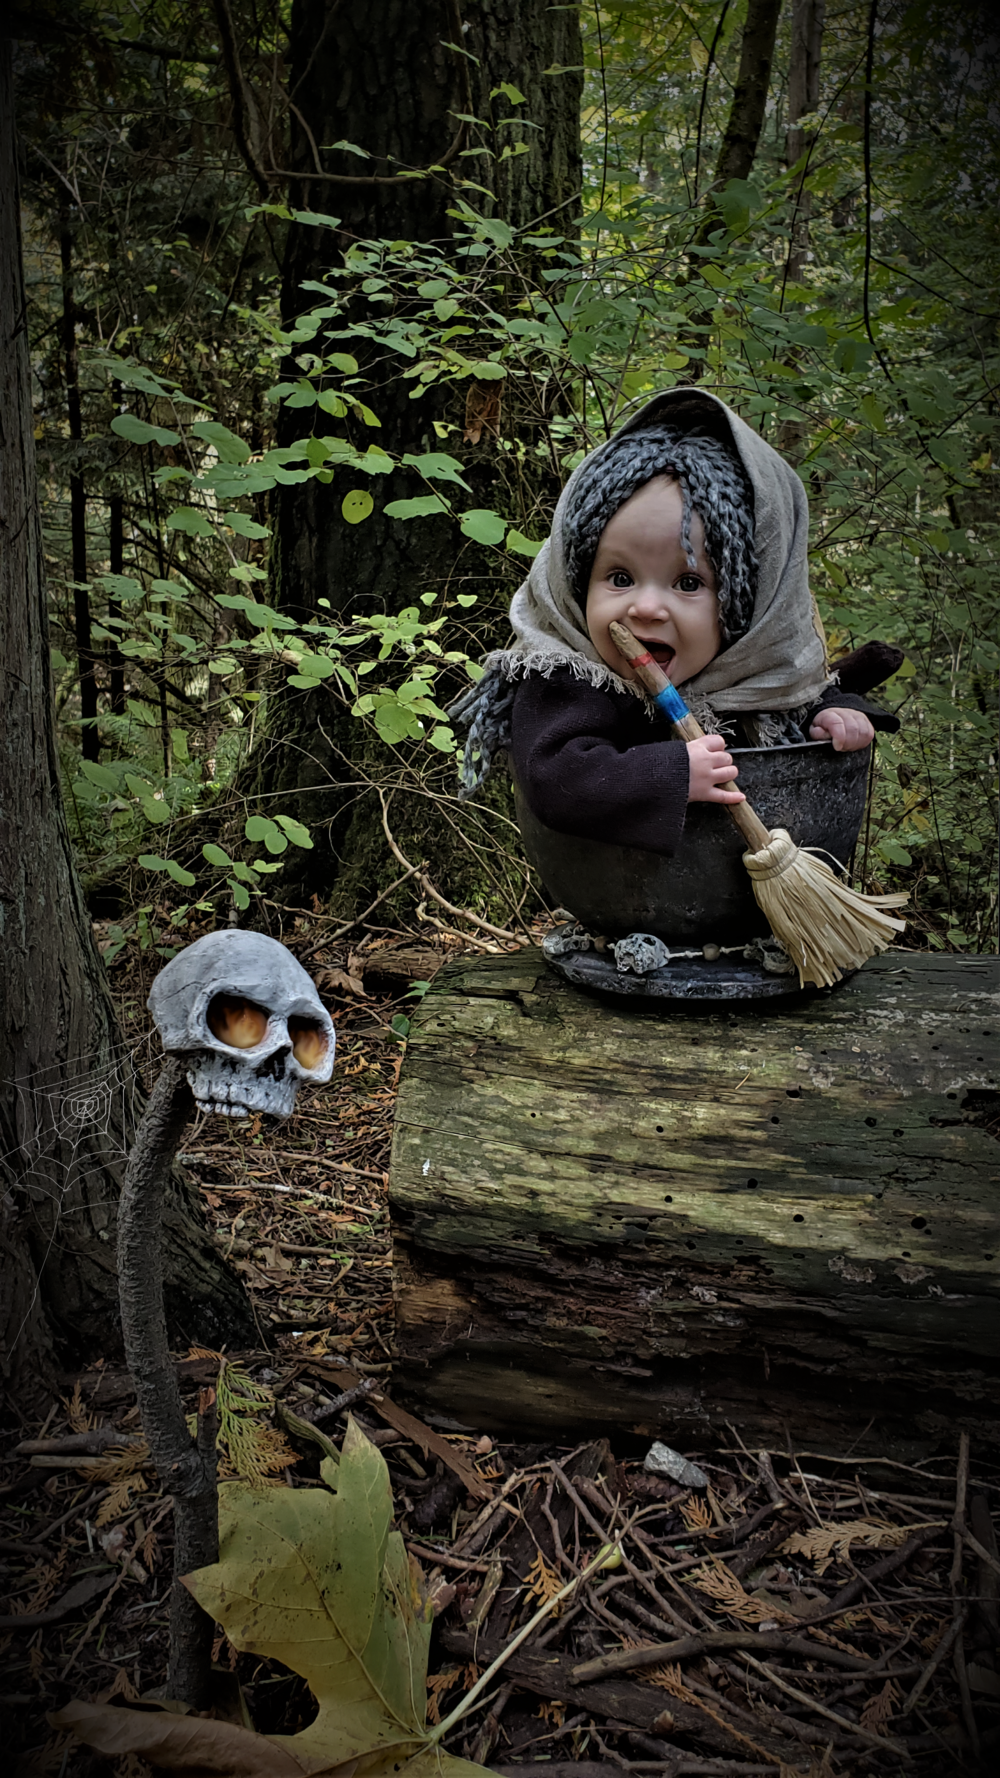 baby Baba Yaga in mortar on log in woods chewing on broom